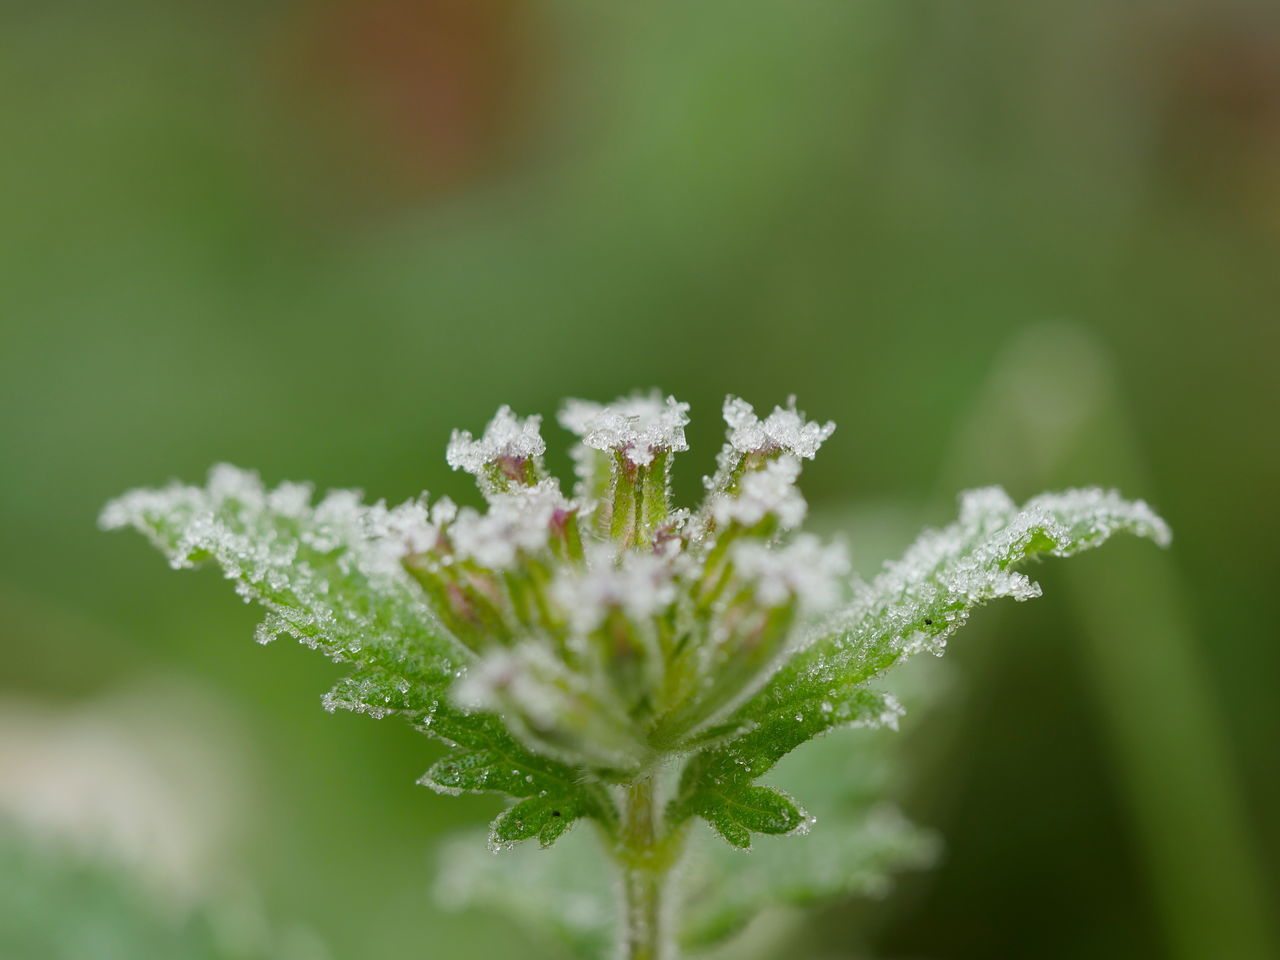 nature, cold temperature, white color, snow, winter, beauty in nature, white, fragility, no people, green color, weather, focus on foreground, drop, frozen, close-up, plant, day, freshness, outdoors, leaf, growth, flower, snowflake, flower head